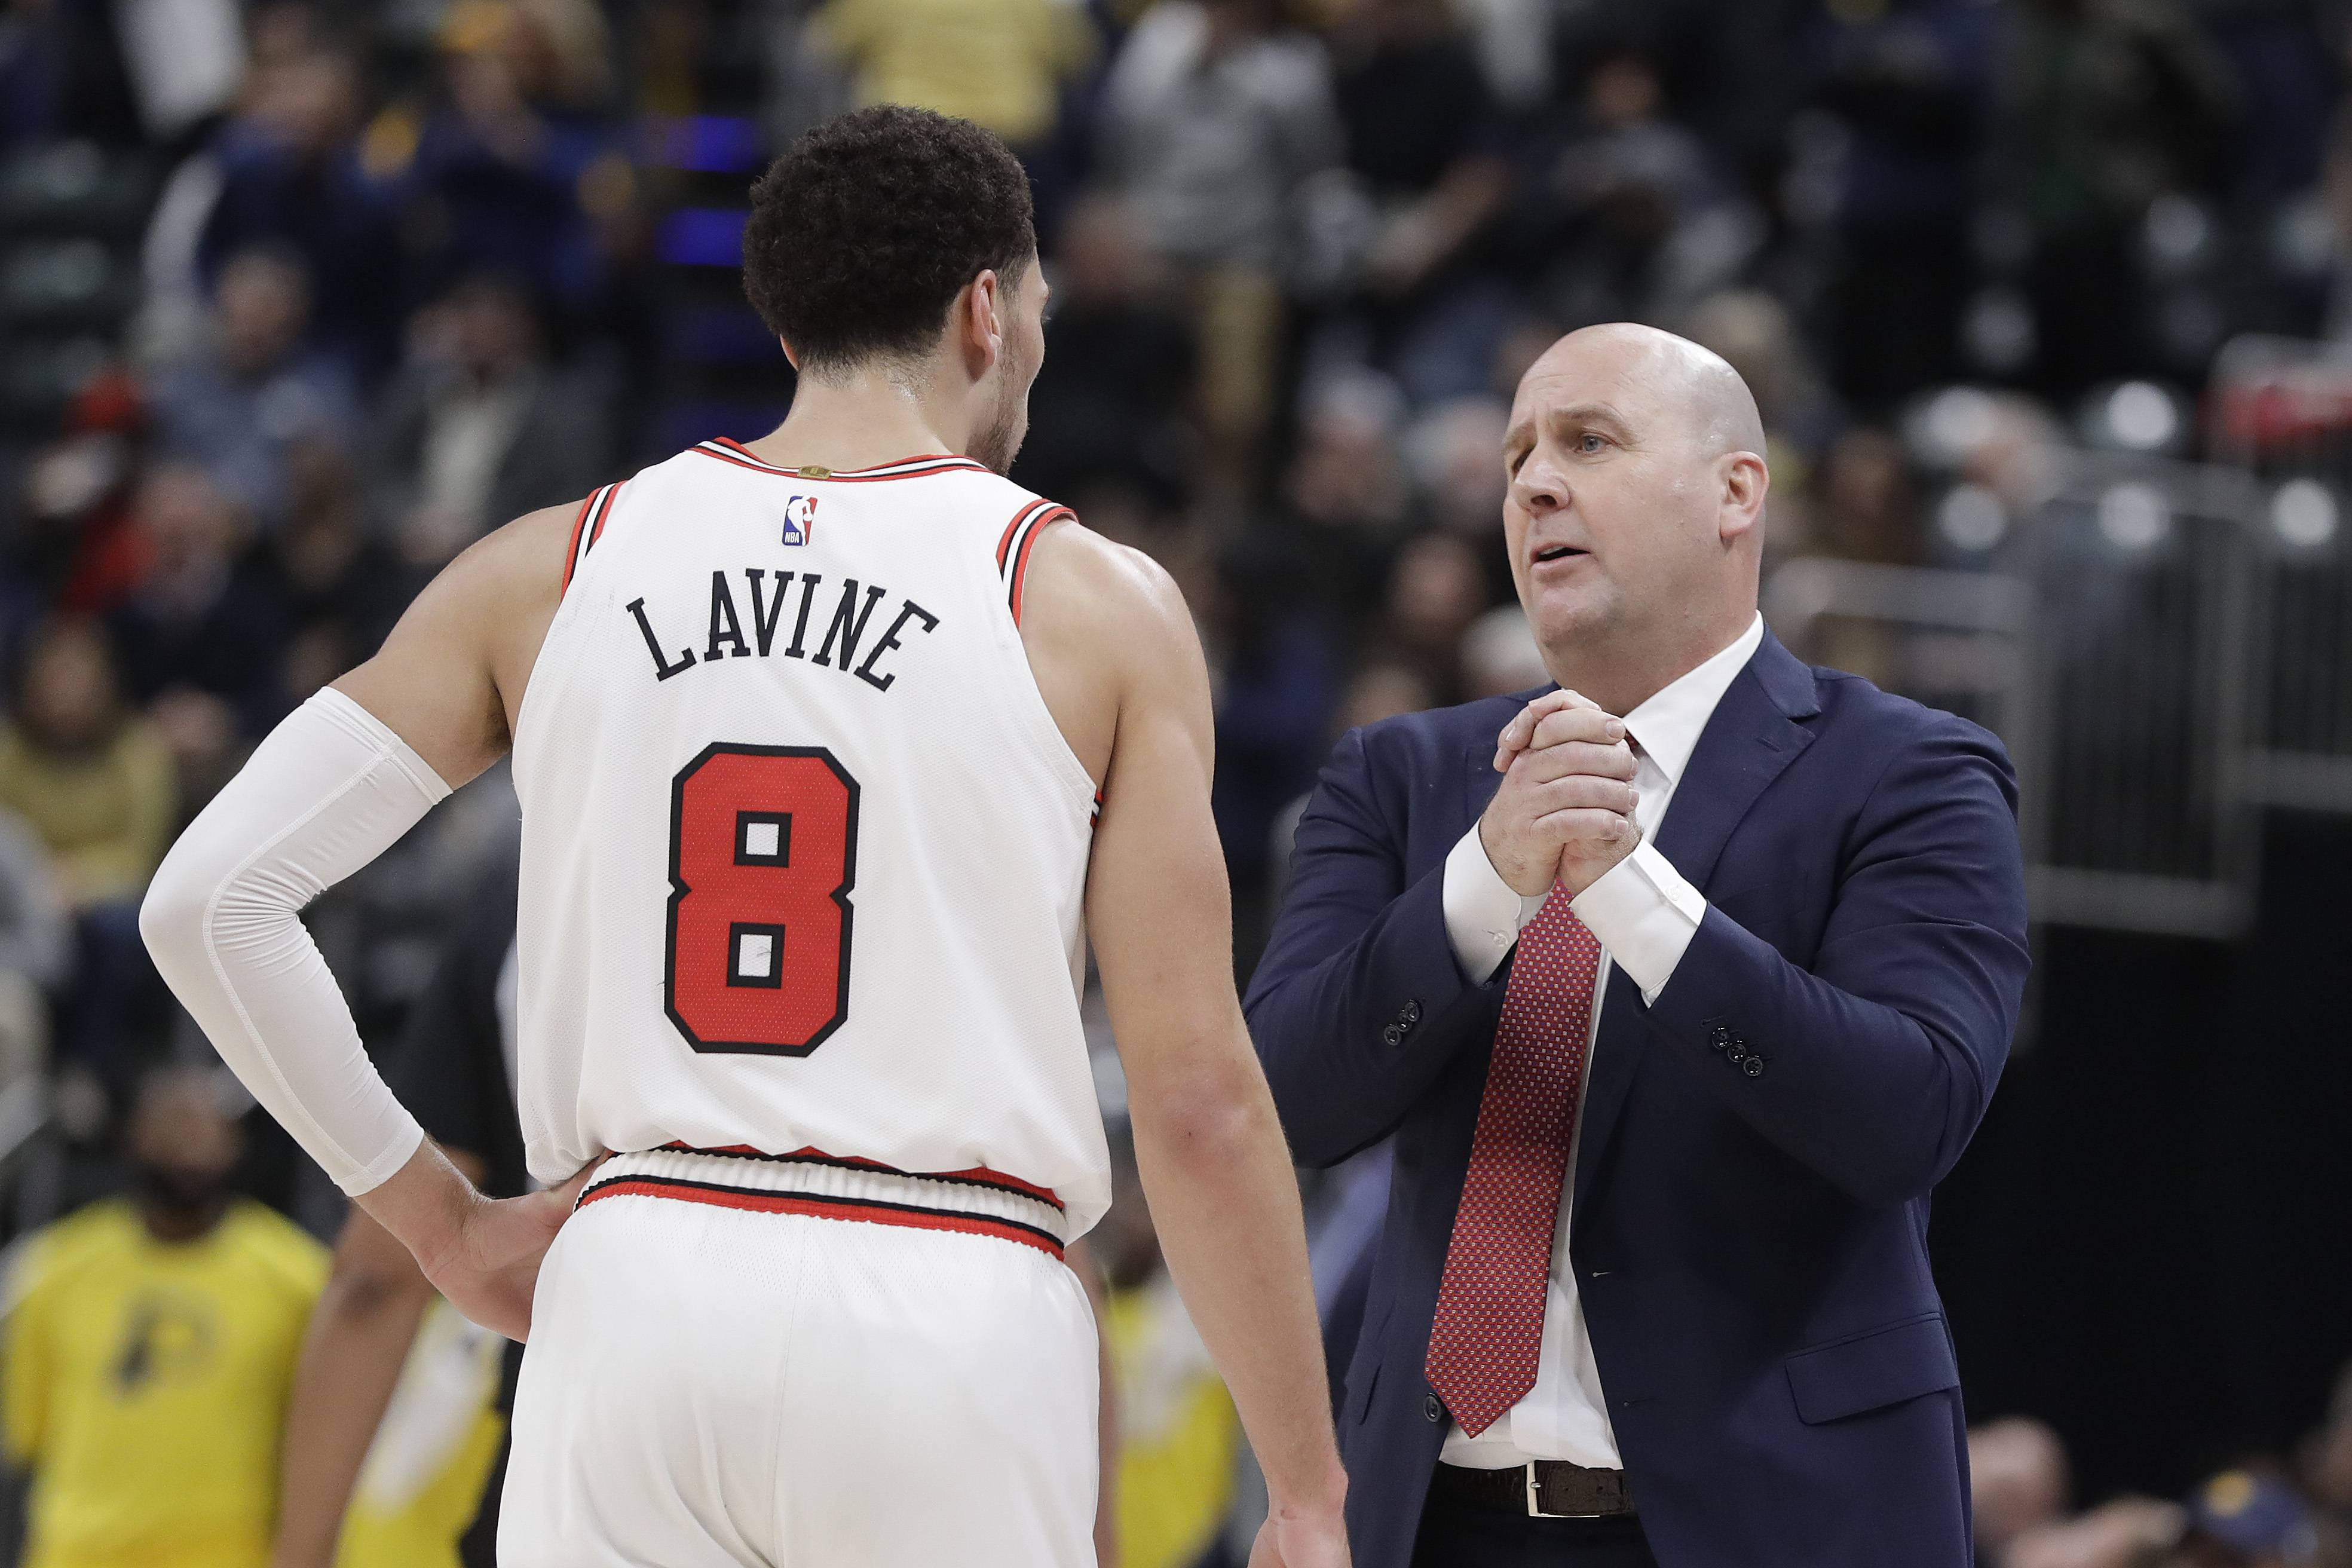 Boylen determined not to let mistakes linger as he leads Chicago Bulls